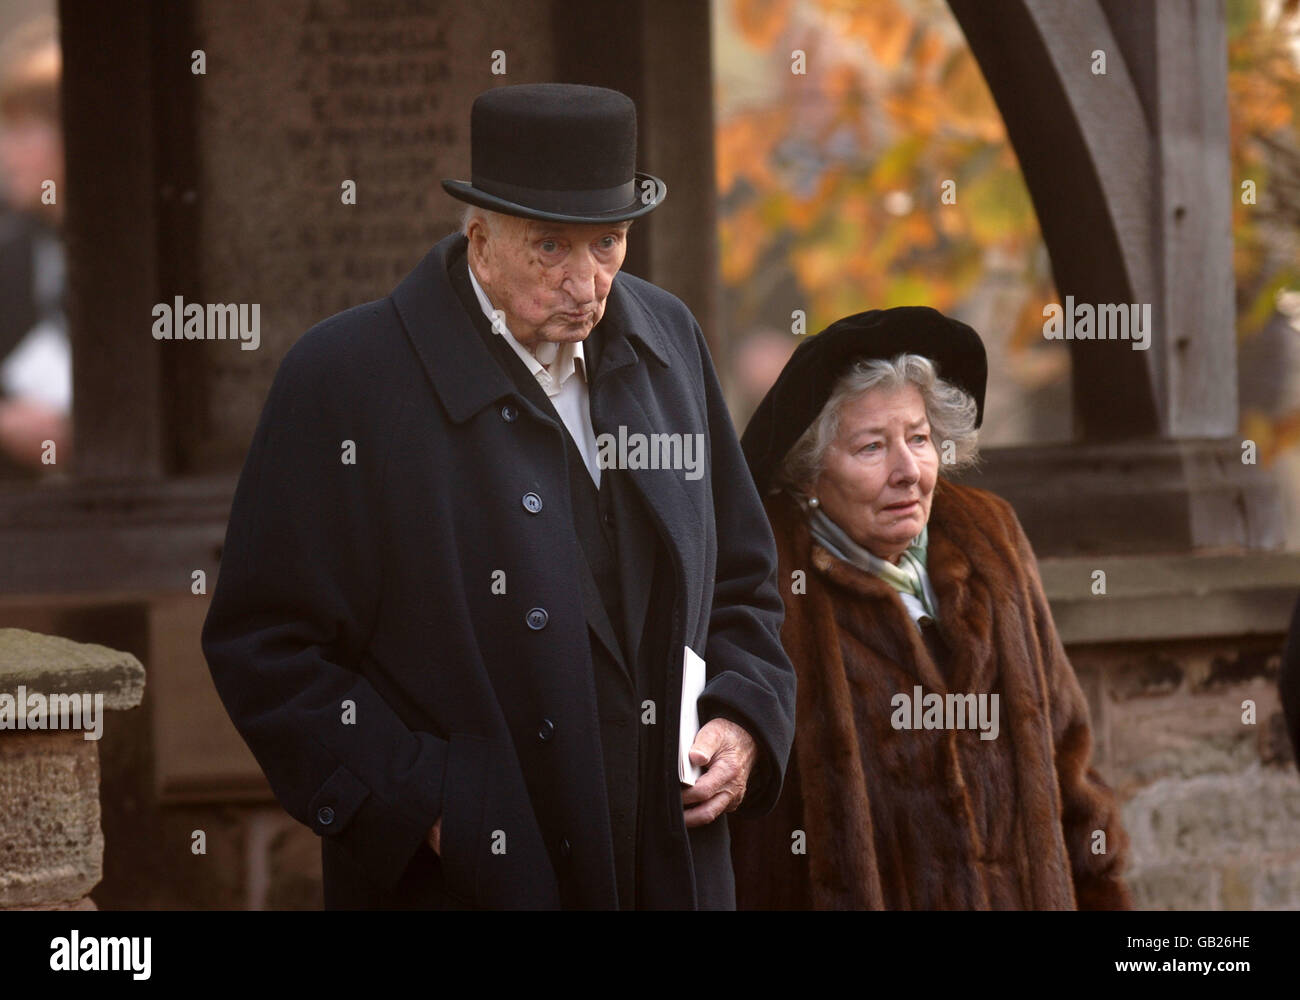 Godfrey Stafford Bostock (1915 - 2008) and his wife Penelope, Dowager Countess of Lindsay at funeral of Patrick - Stock Image